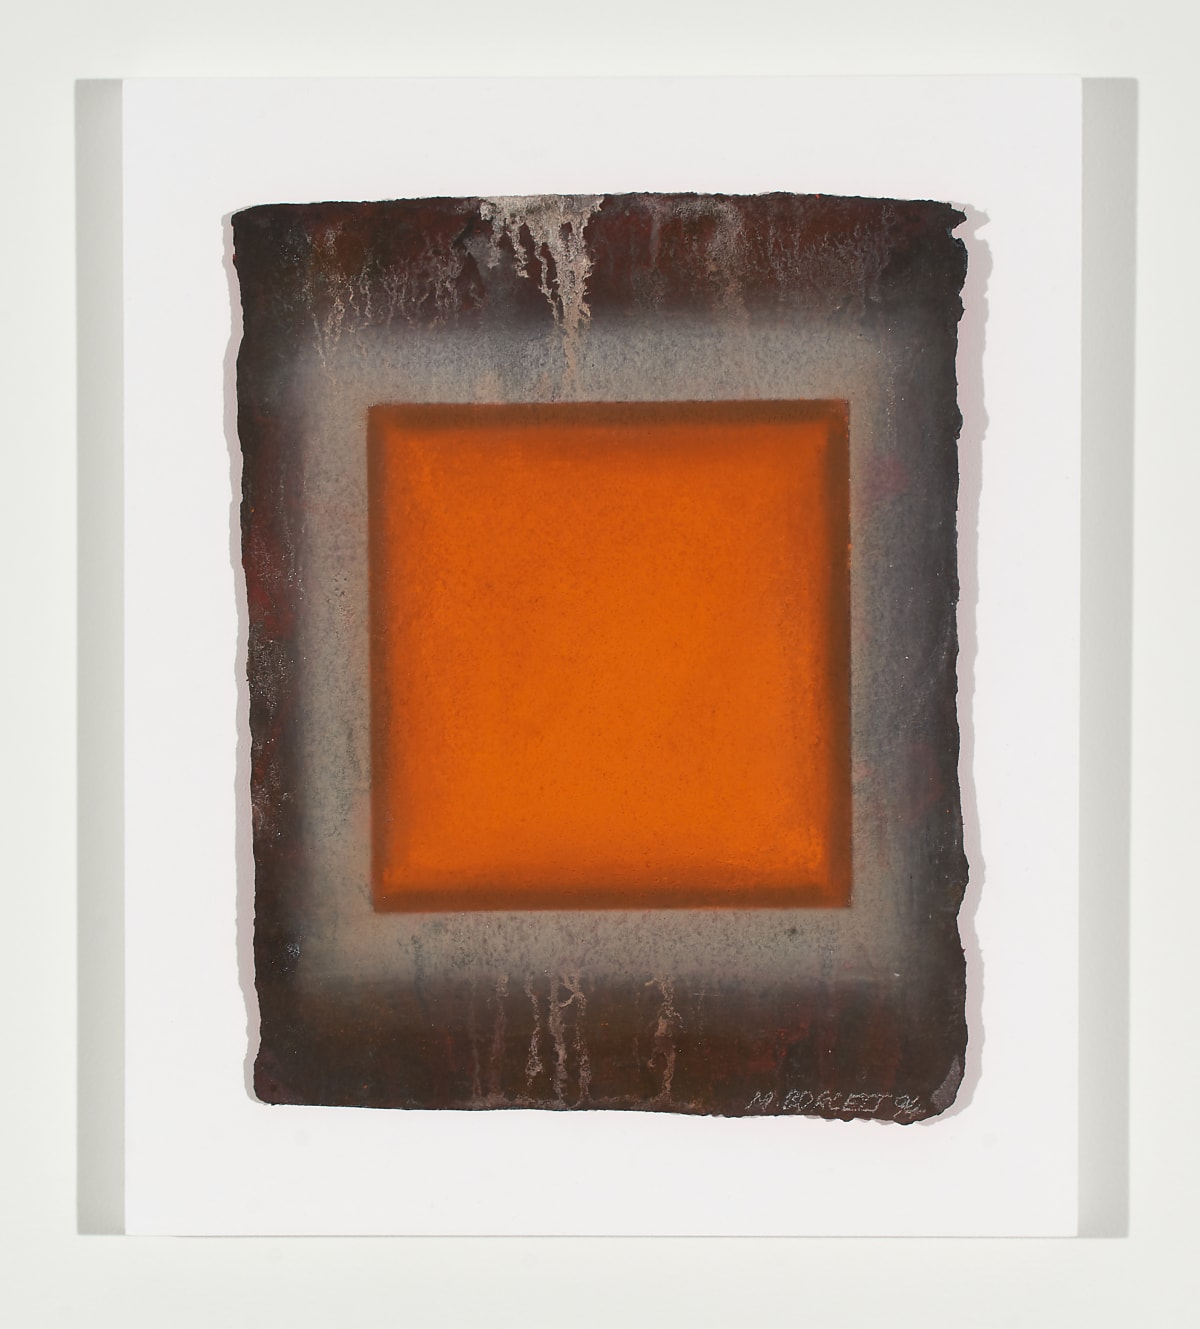 Marion Borgelt Orange Leaf: No 3, 1994 pigment on handmade paper in Perspex box 40.5 x 33.5 x 5 cm